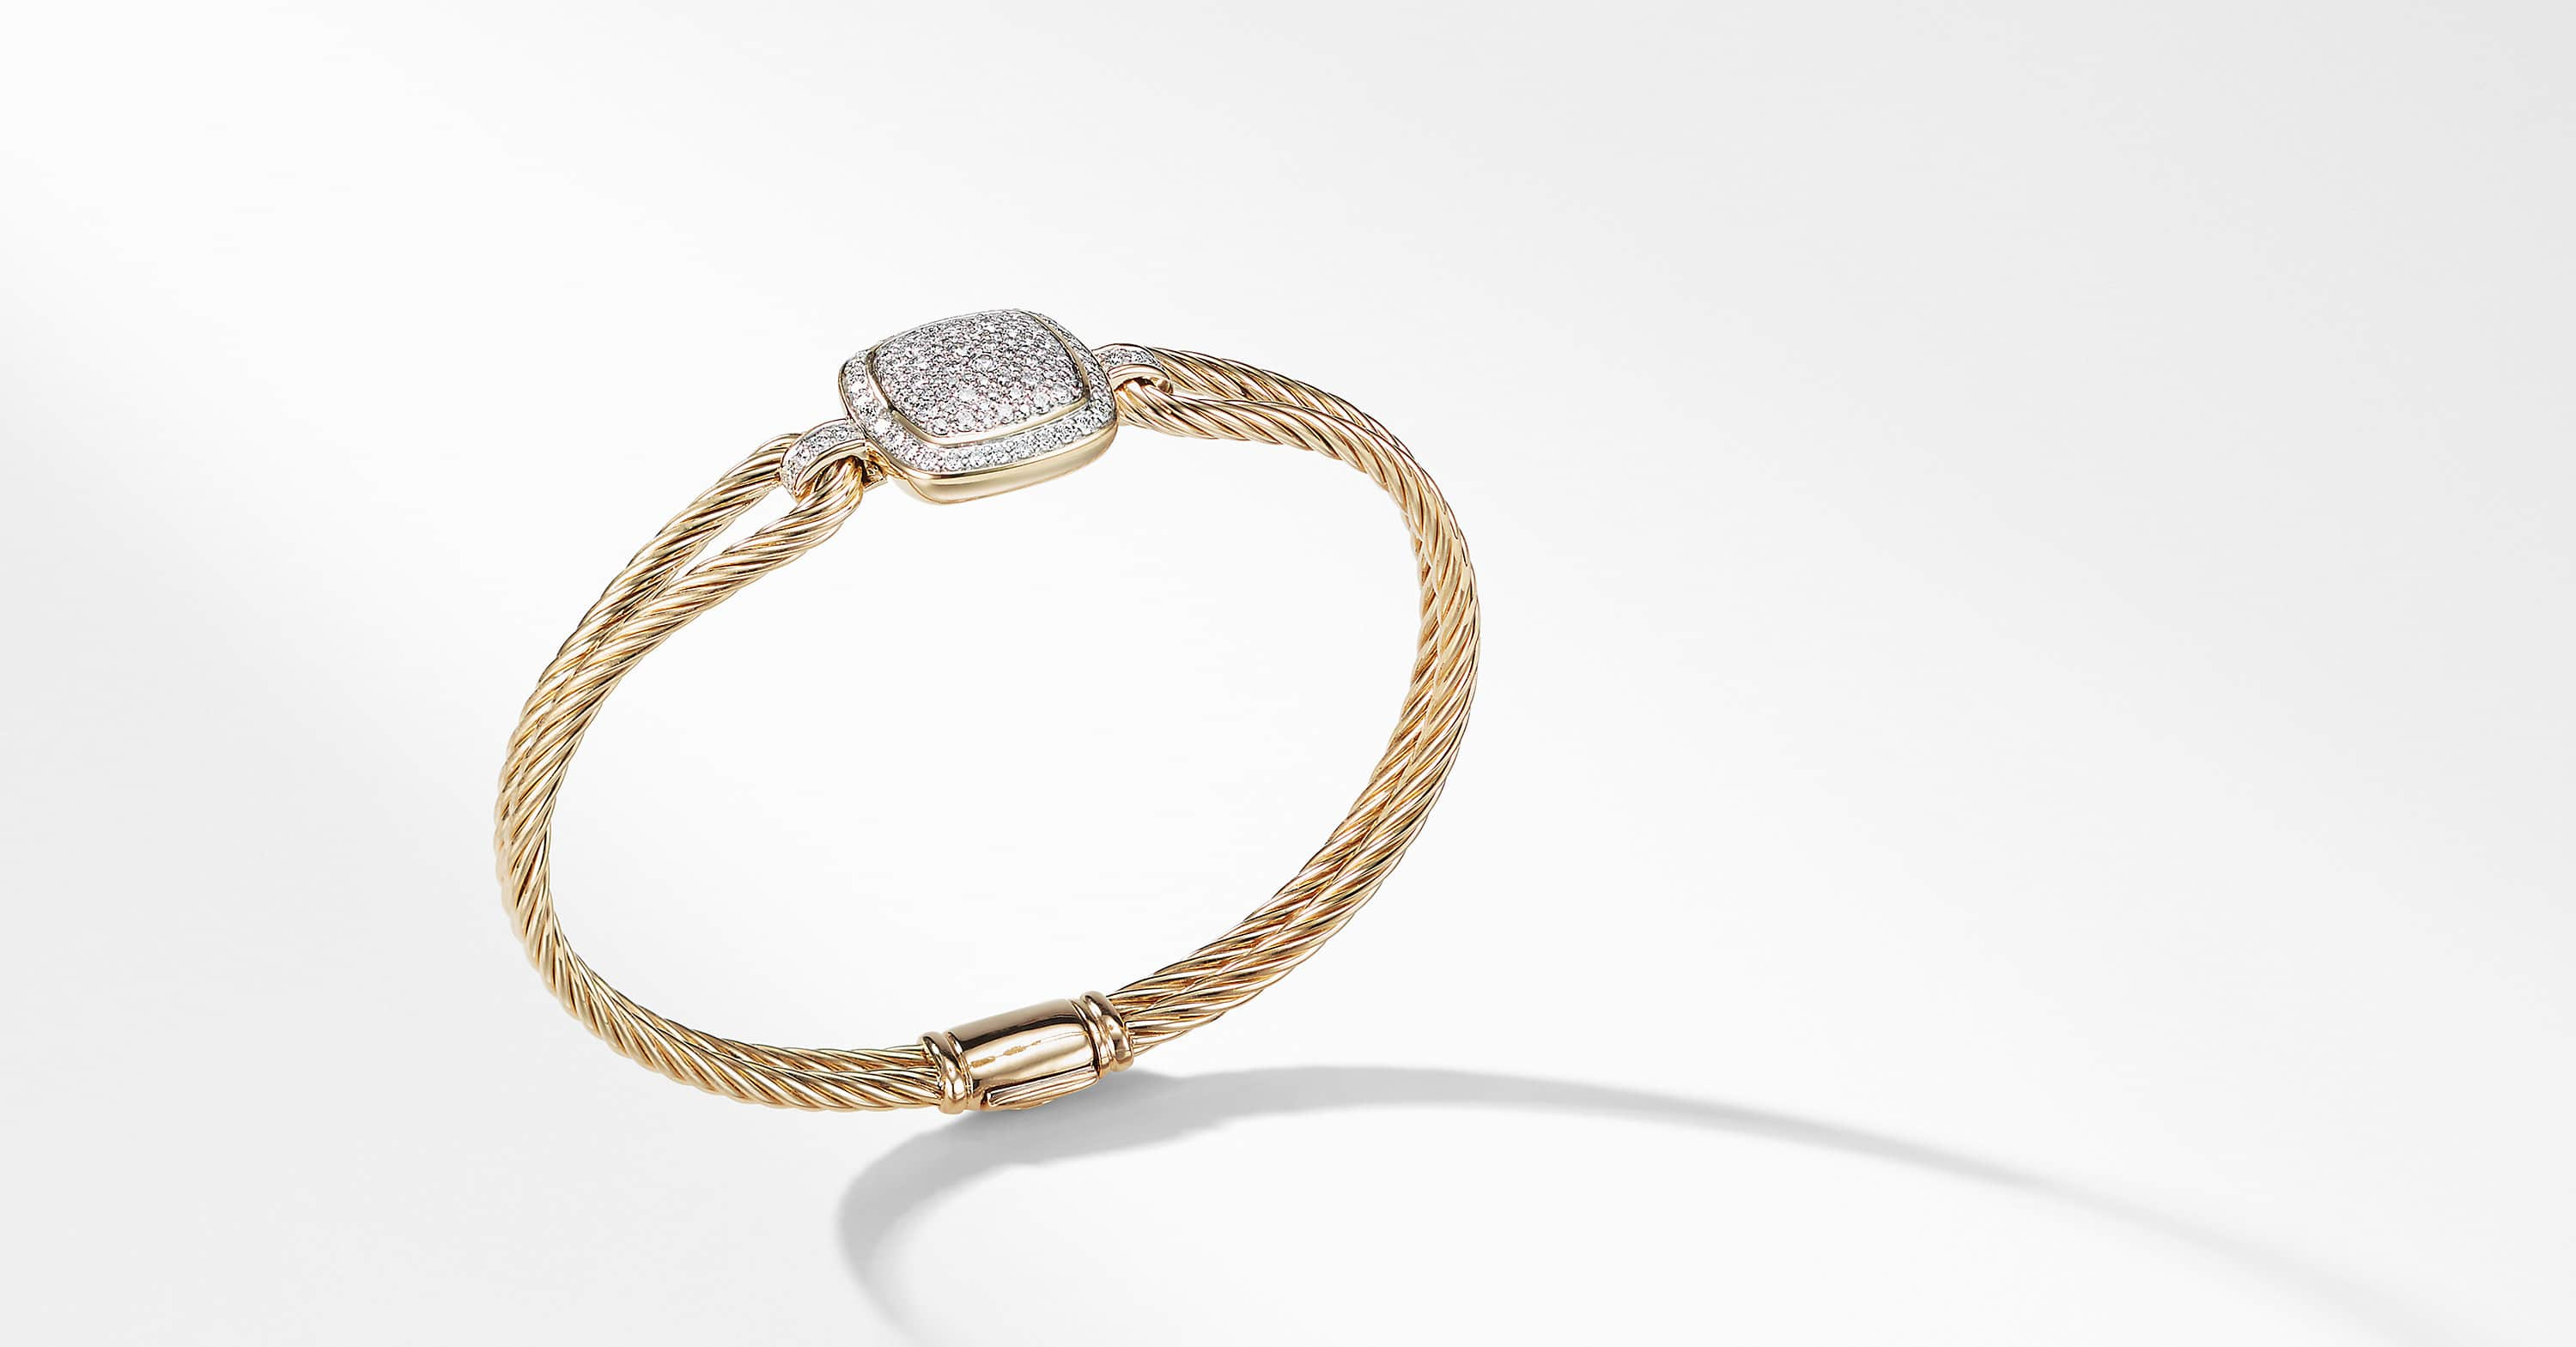 Albion Bracelet with Diamonds in 18K Gold, 15mm